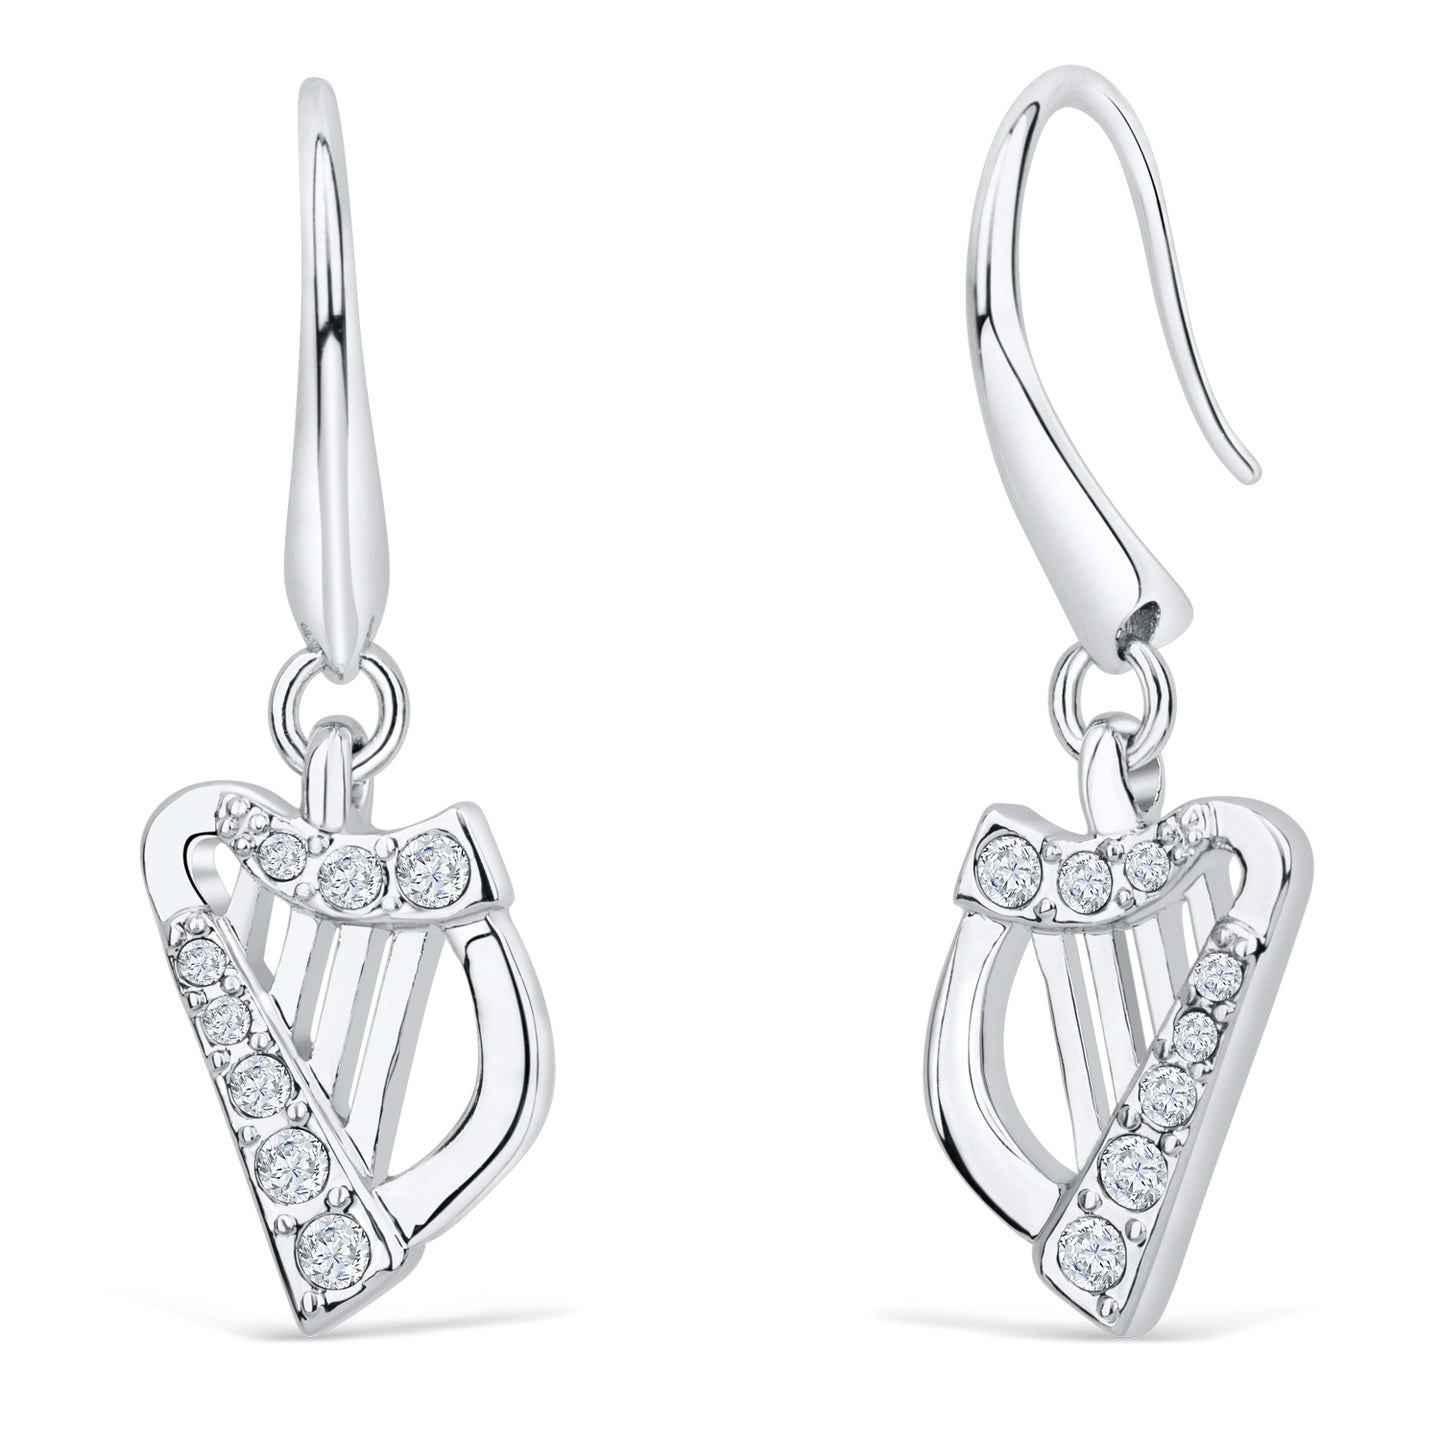 Harp Earrings with Clear Crystals